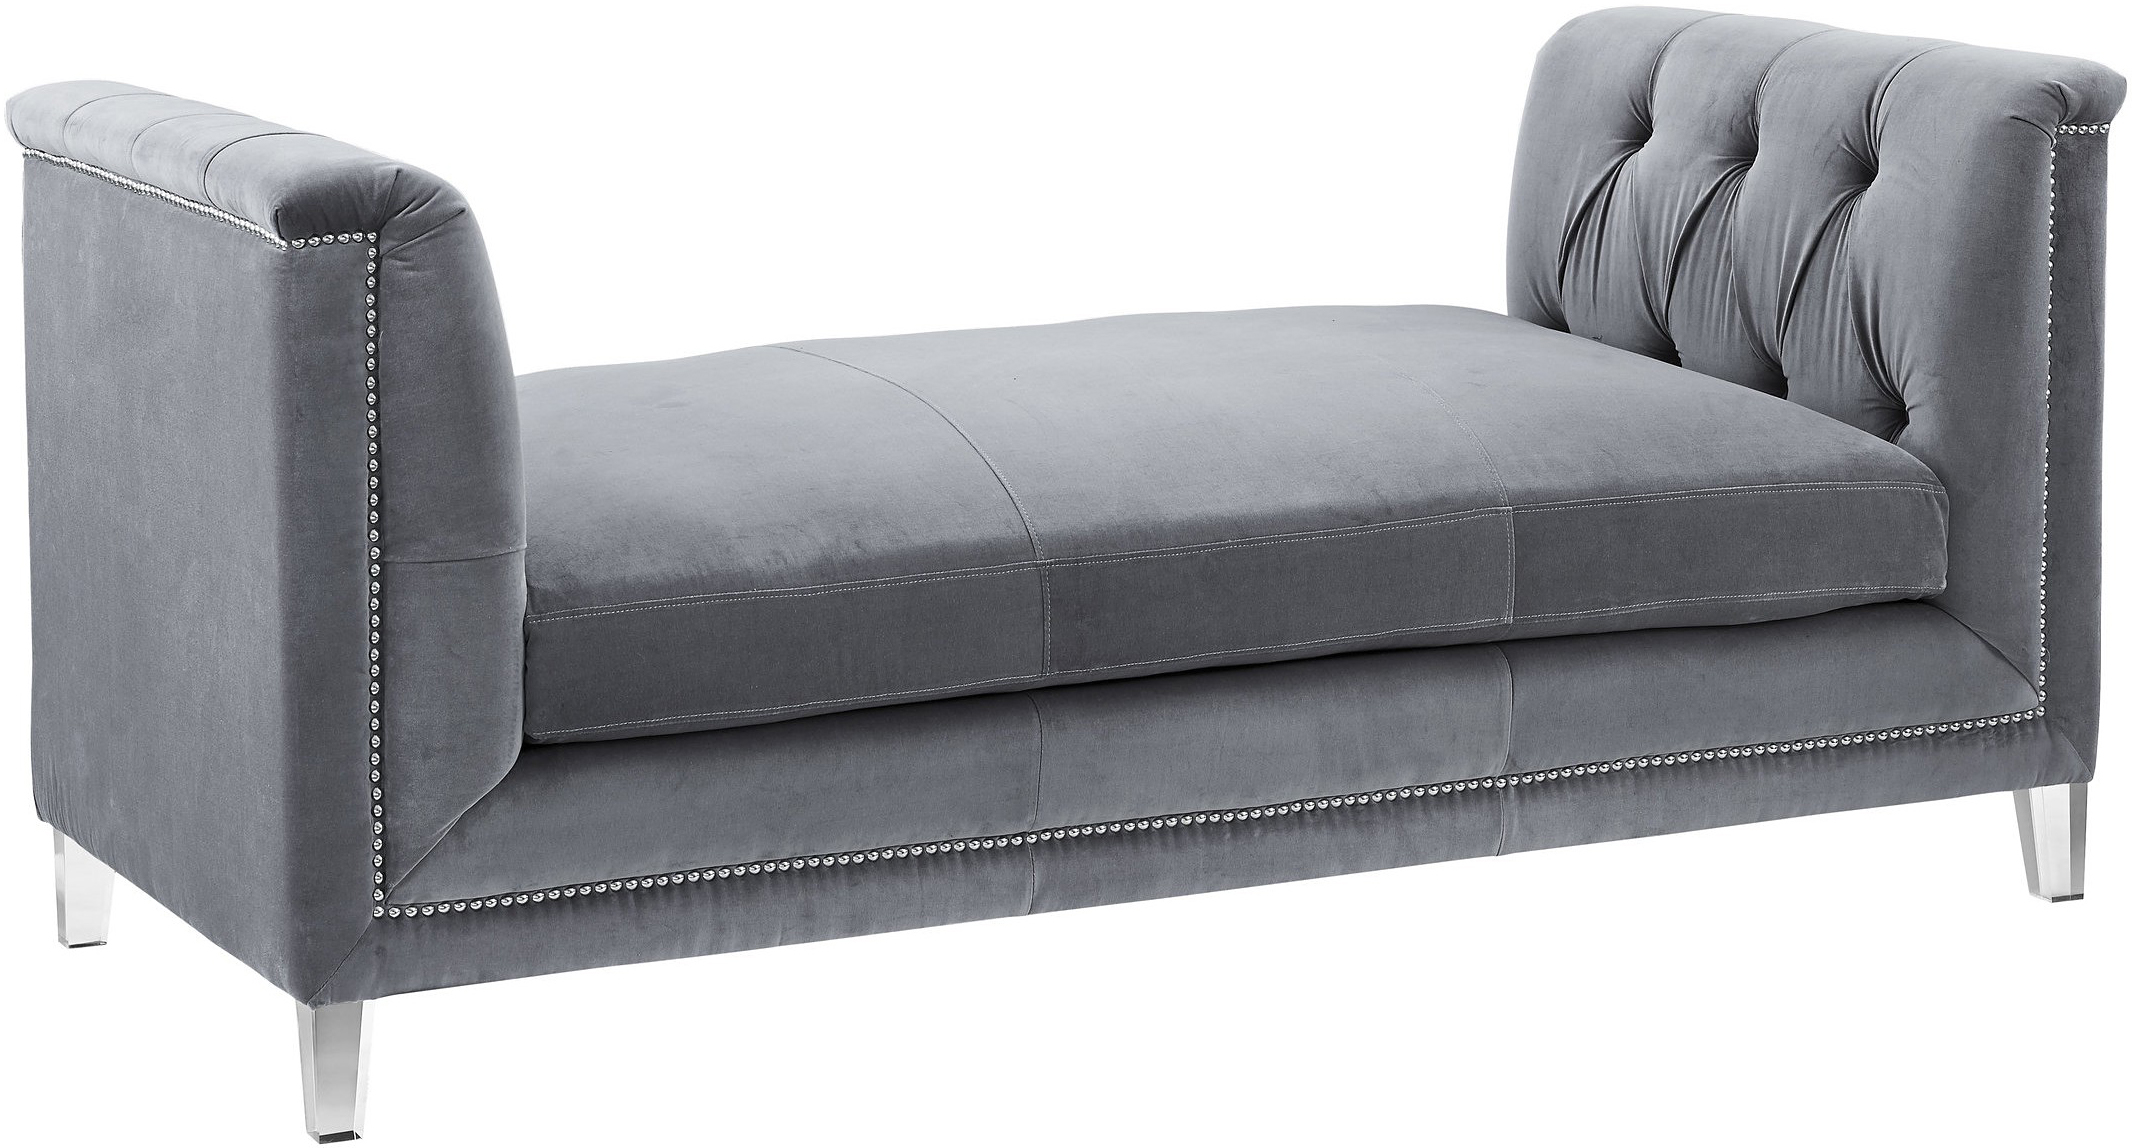 the presidio bench daybed in grey velvet